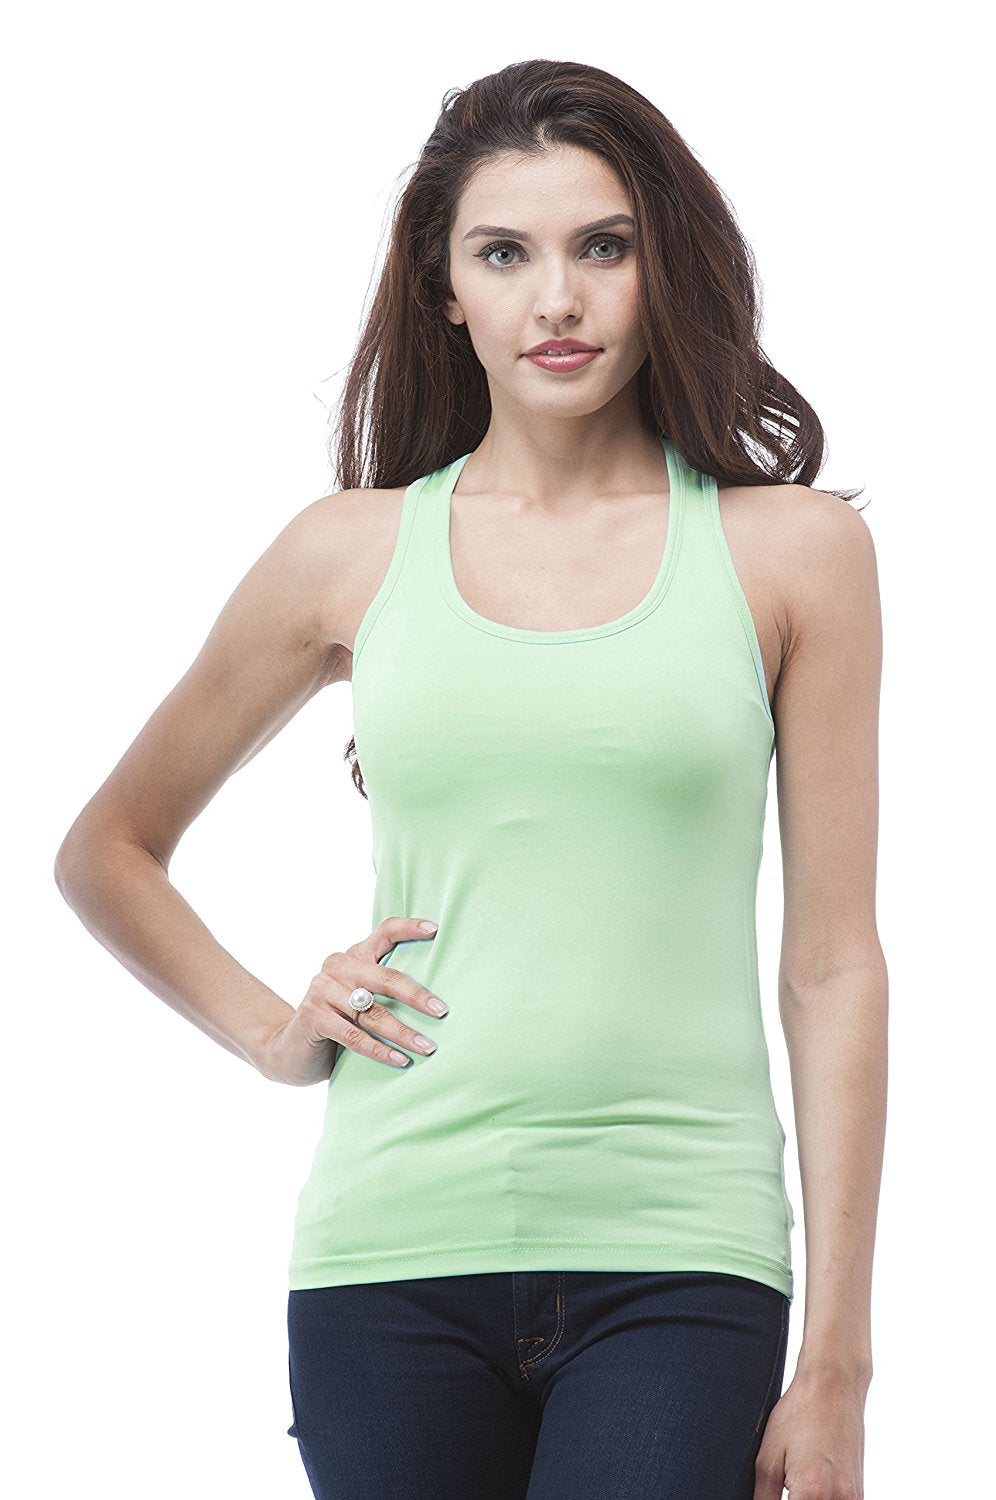 Hollywood Star Fashion Racer Back Work Out Tank Top with Bra Pad